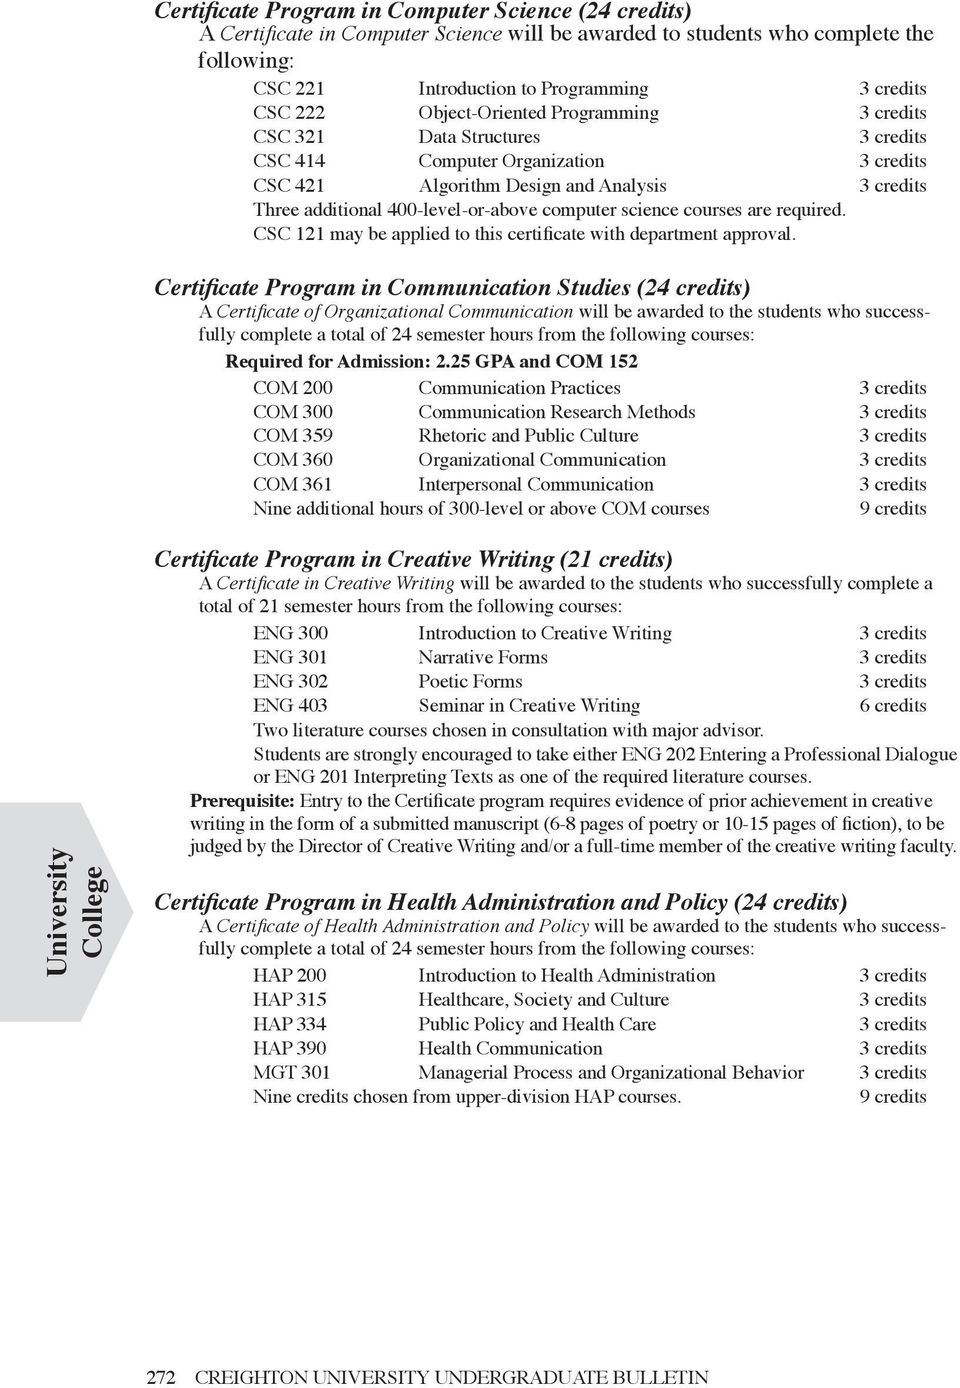 computer science courses are required. CSC 121 may be applied to this certificate with department approval.